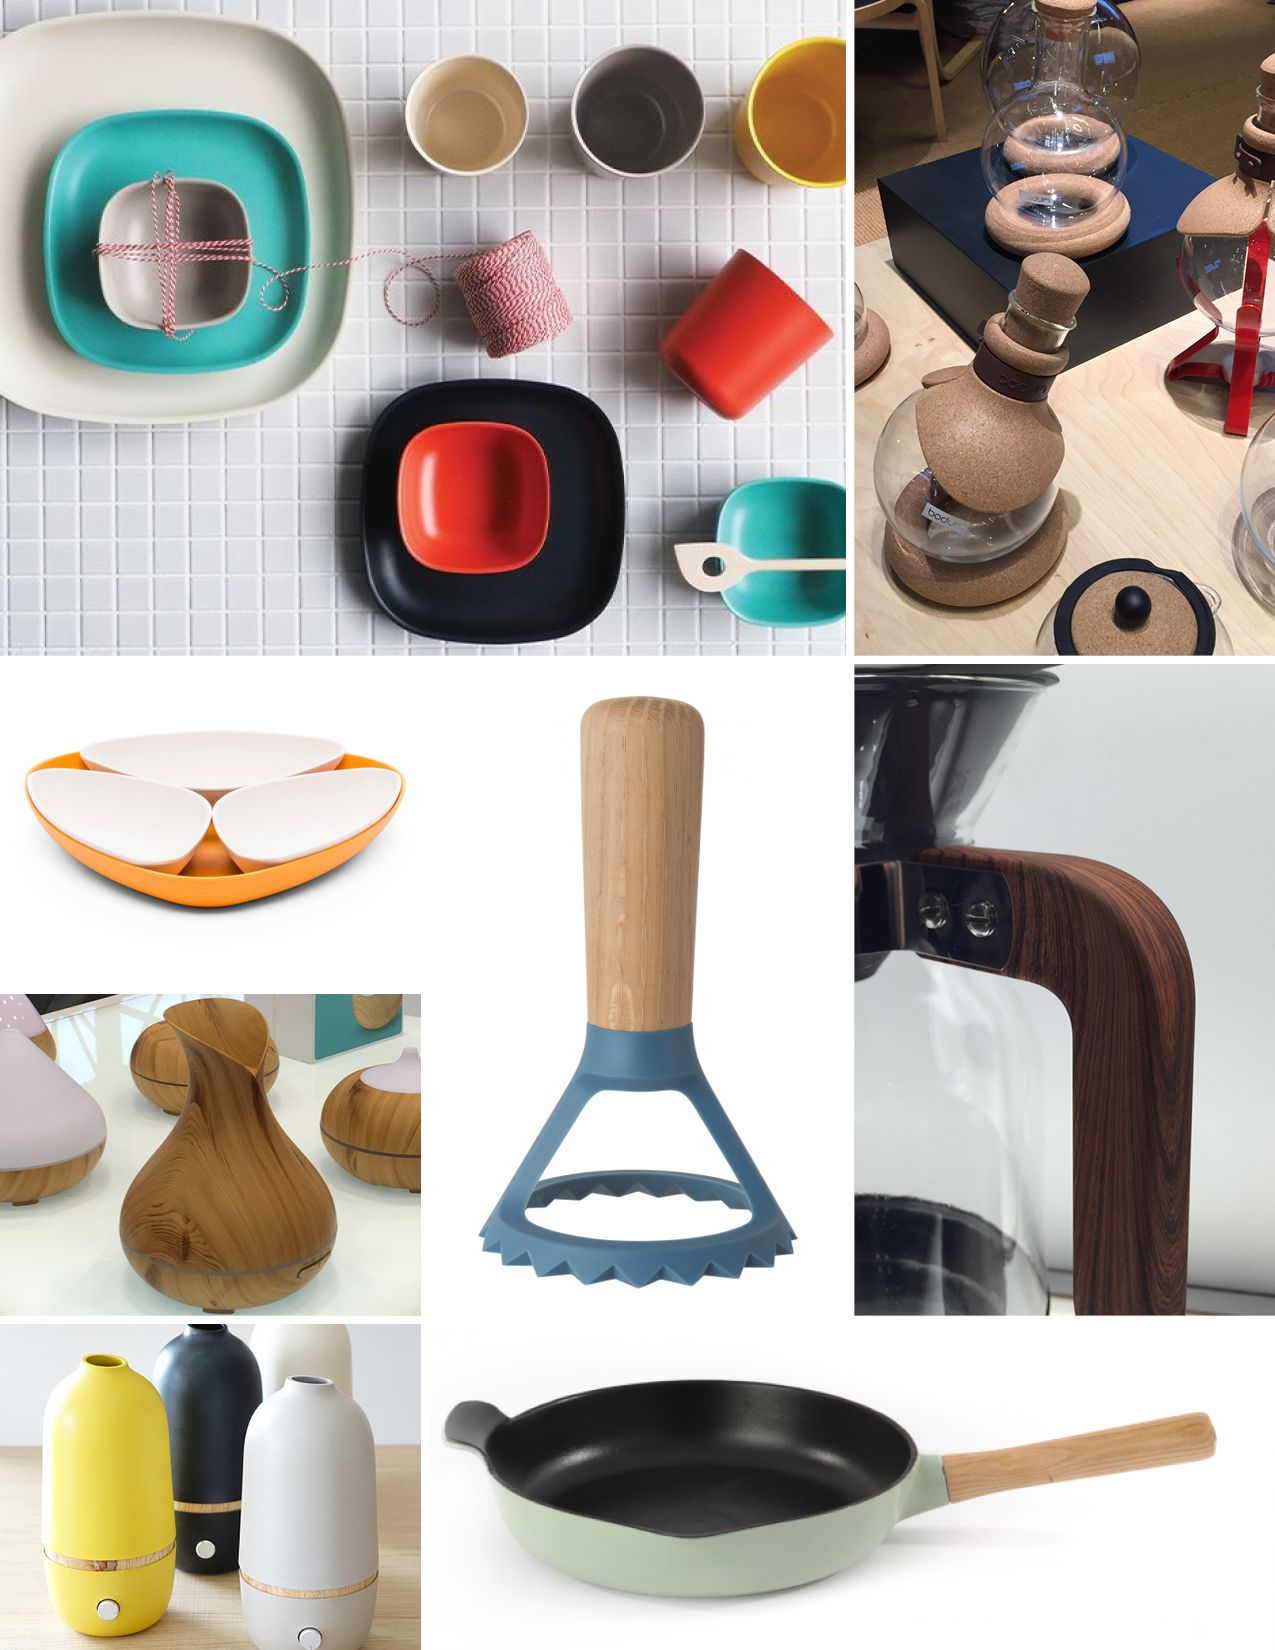 Housewares show 2017 trends natural and eco friendly materials